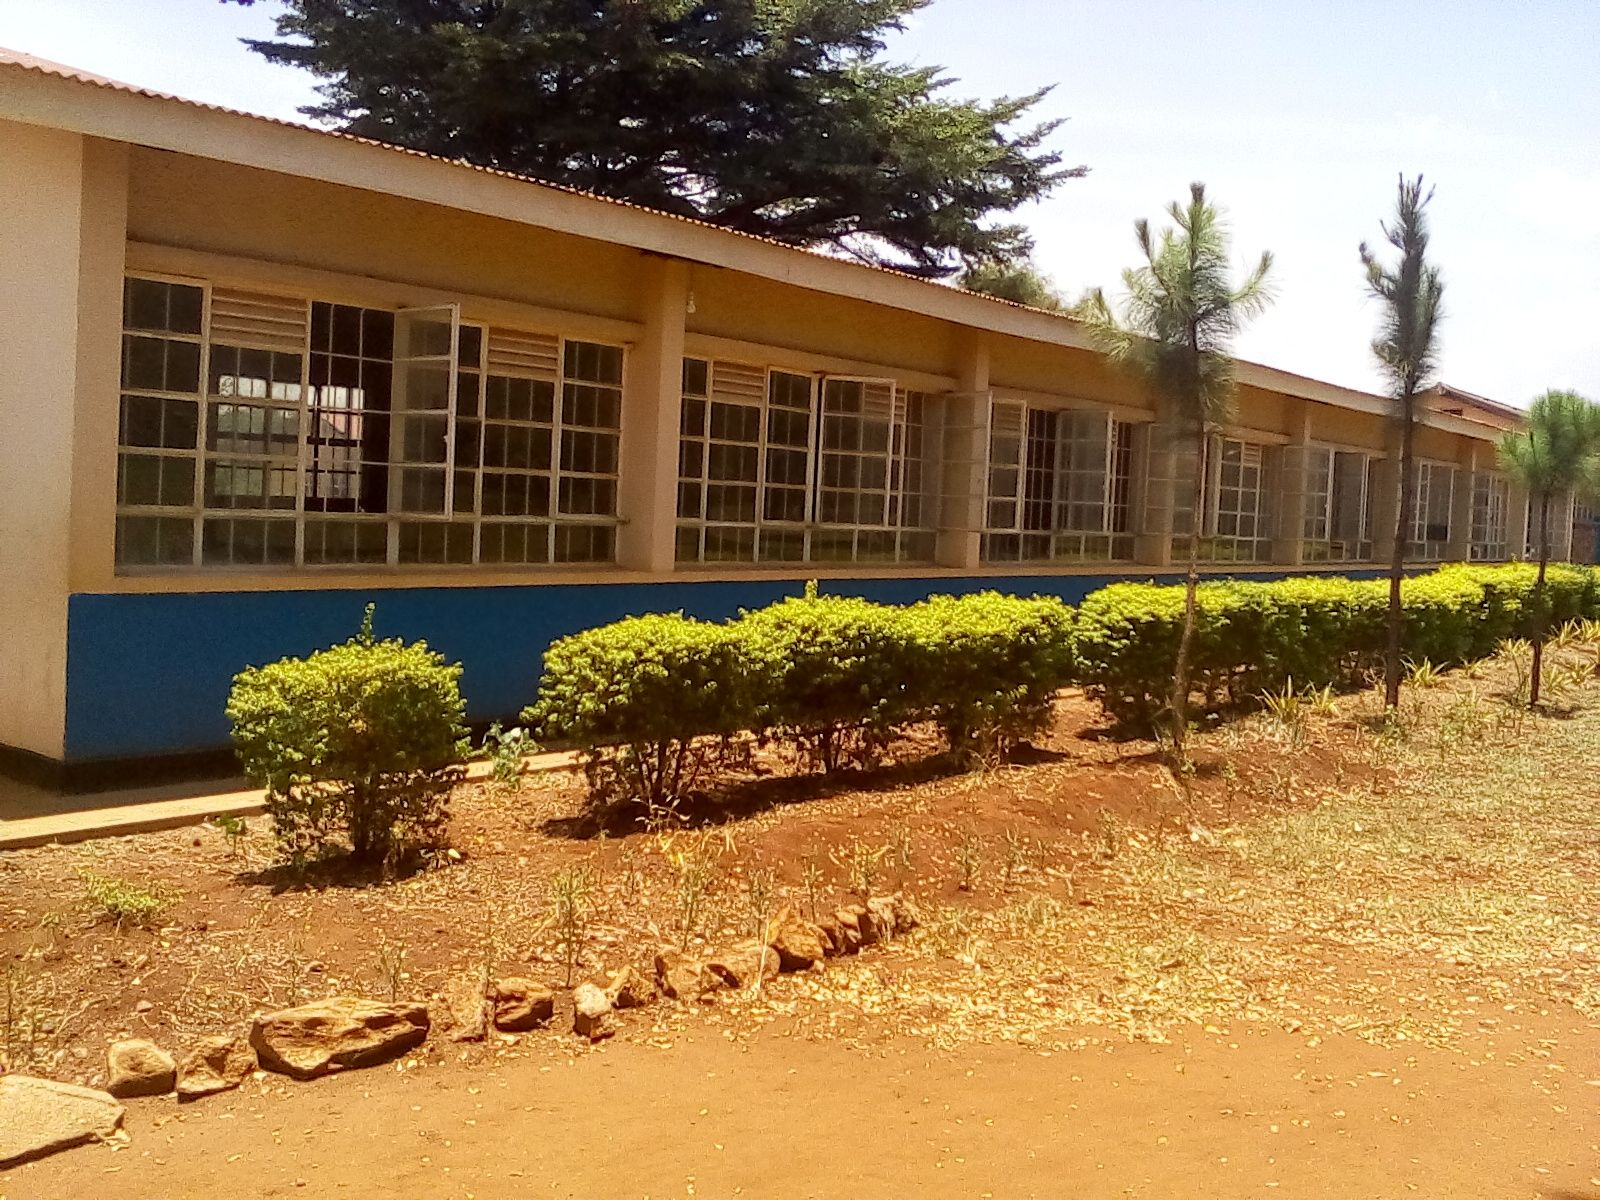 Example of a classroom block